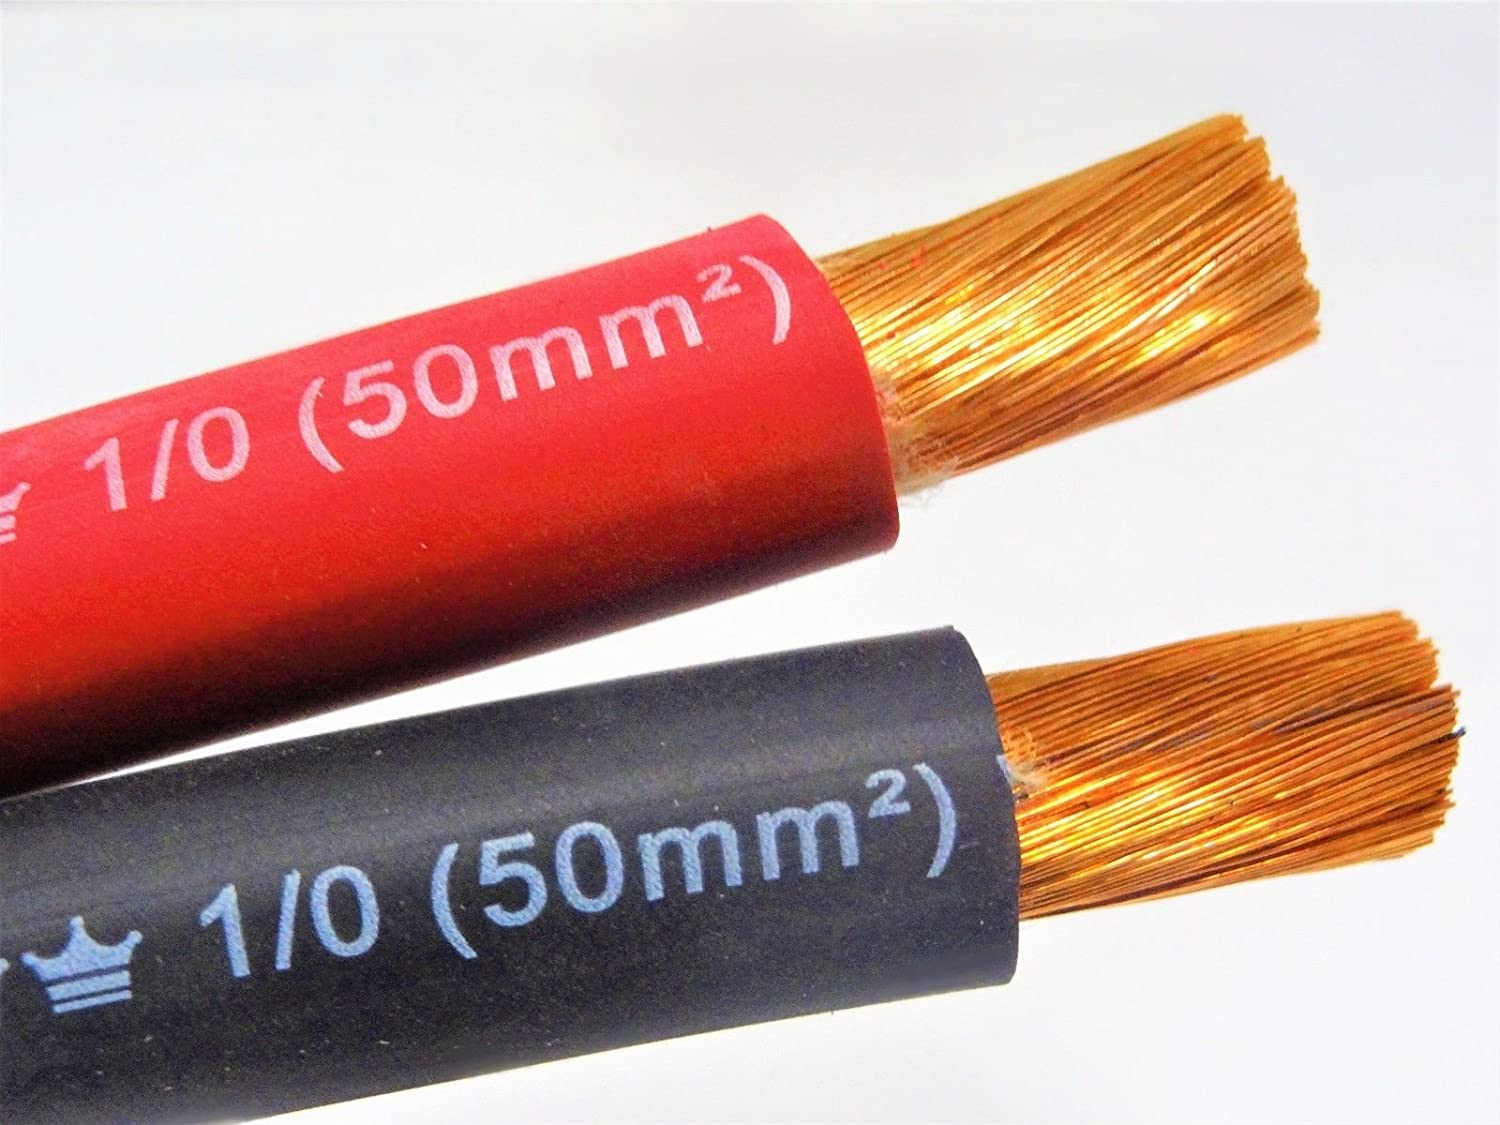 1 0 Awg Excelene Welding Cable Black Or Red Made In Usa 50 Ft 50 Red 50 Black Amazon Com